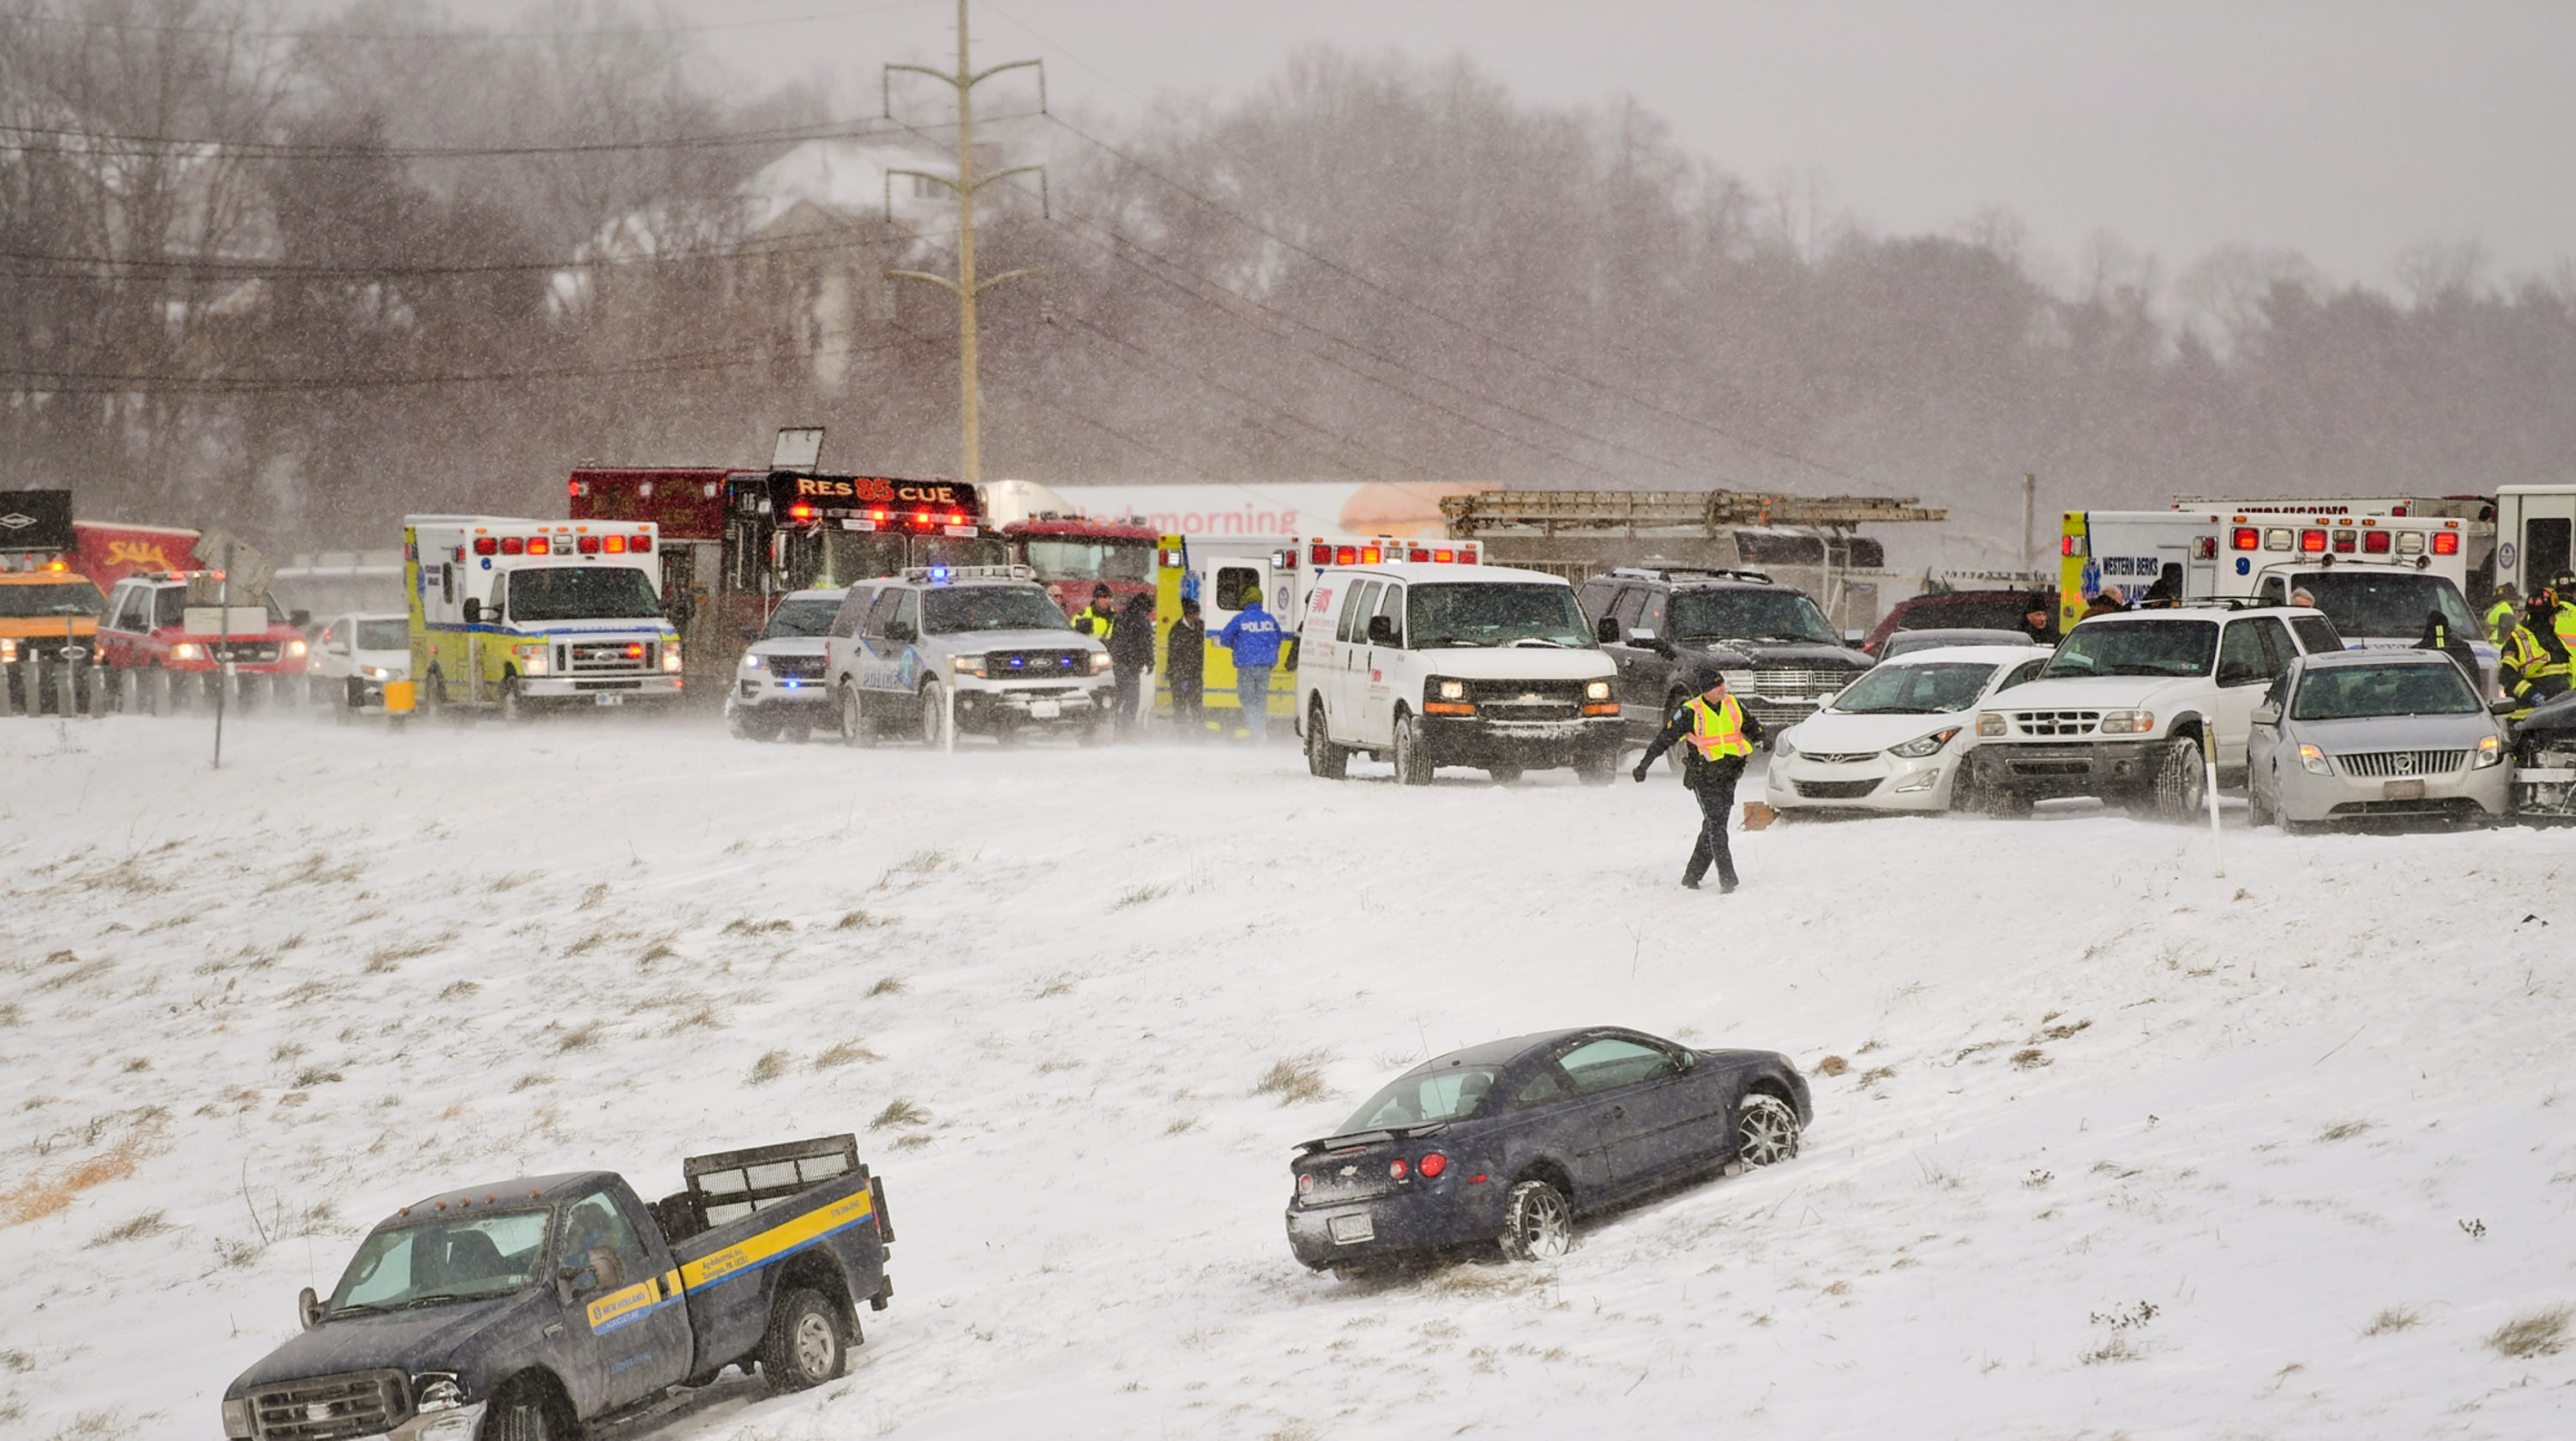 Snow squall: What is the cold weather phenomenon causing car crashes?